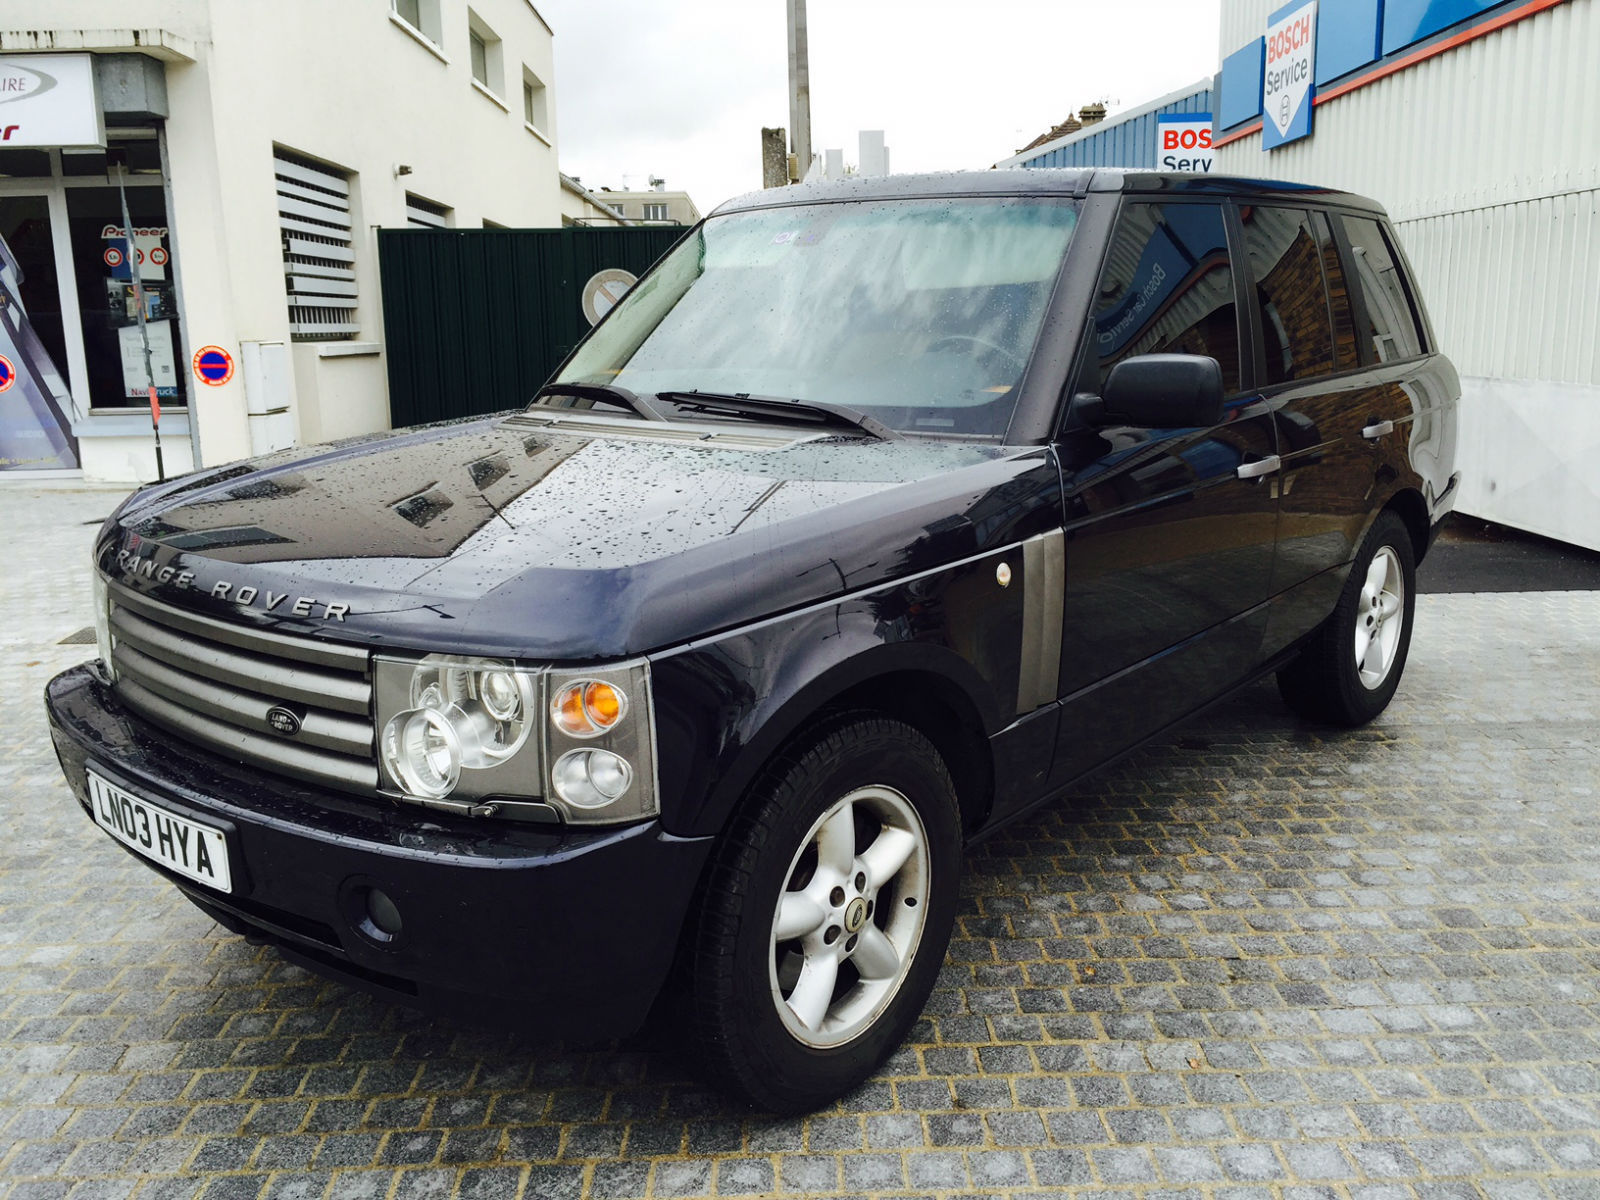 LANDROVER RANGE ROVER 3.0 TDV6 2003 Model Year UK REGISTERED